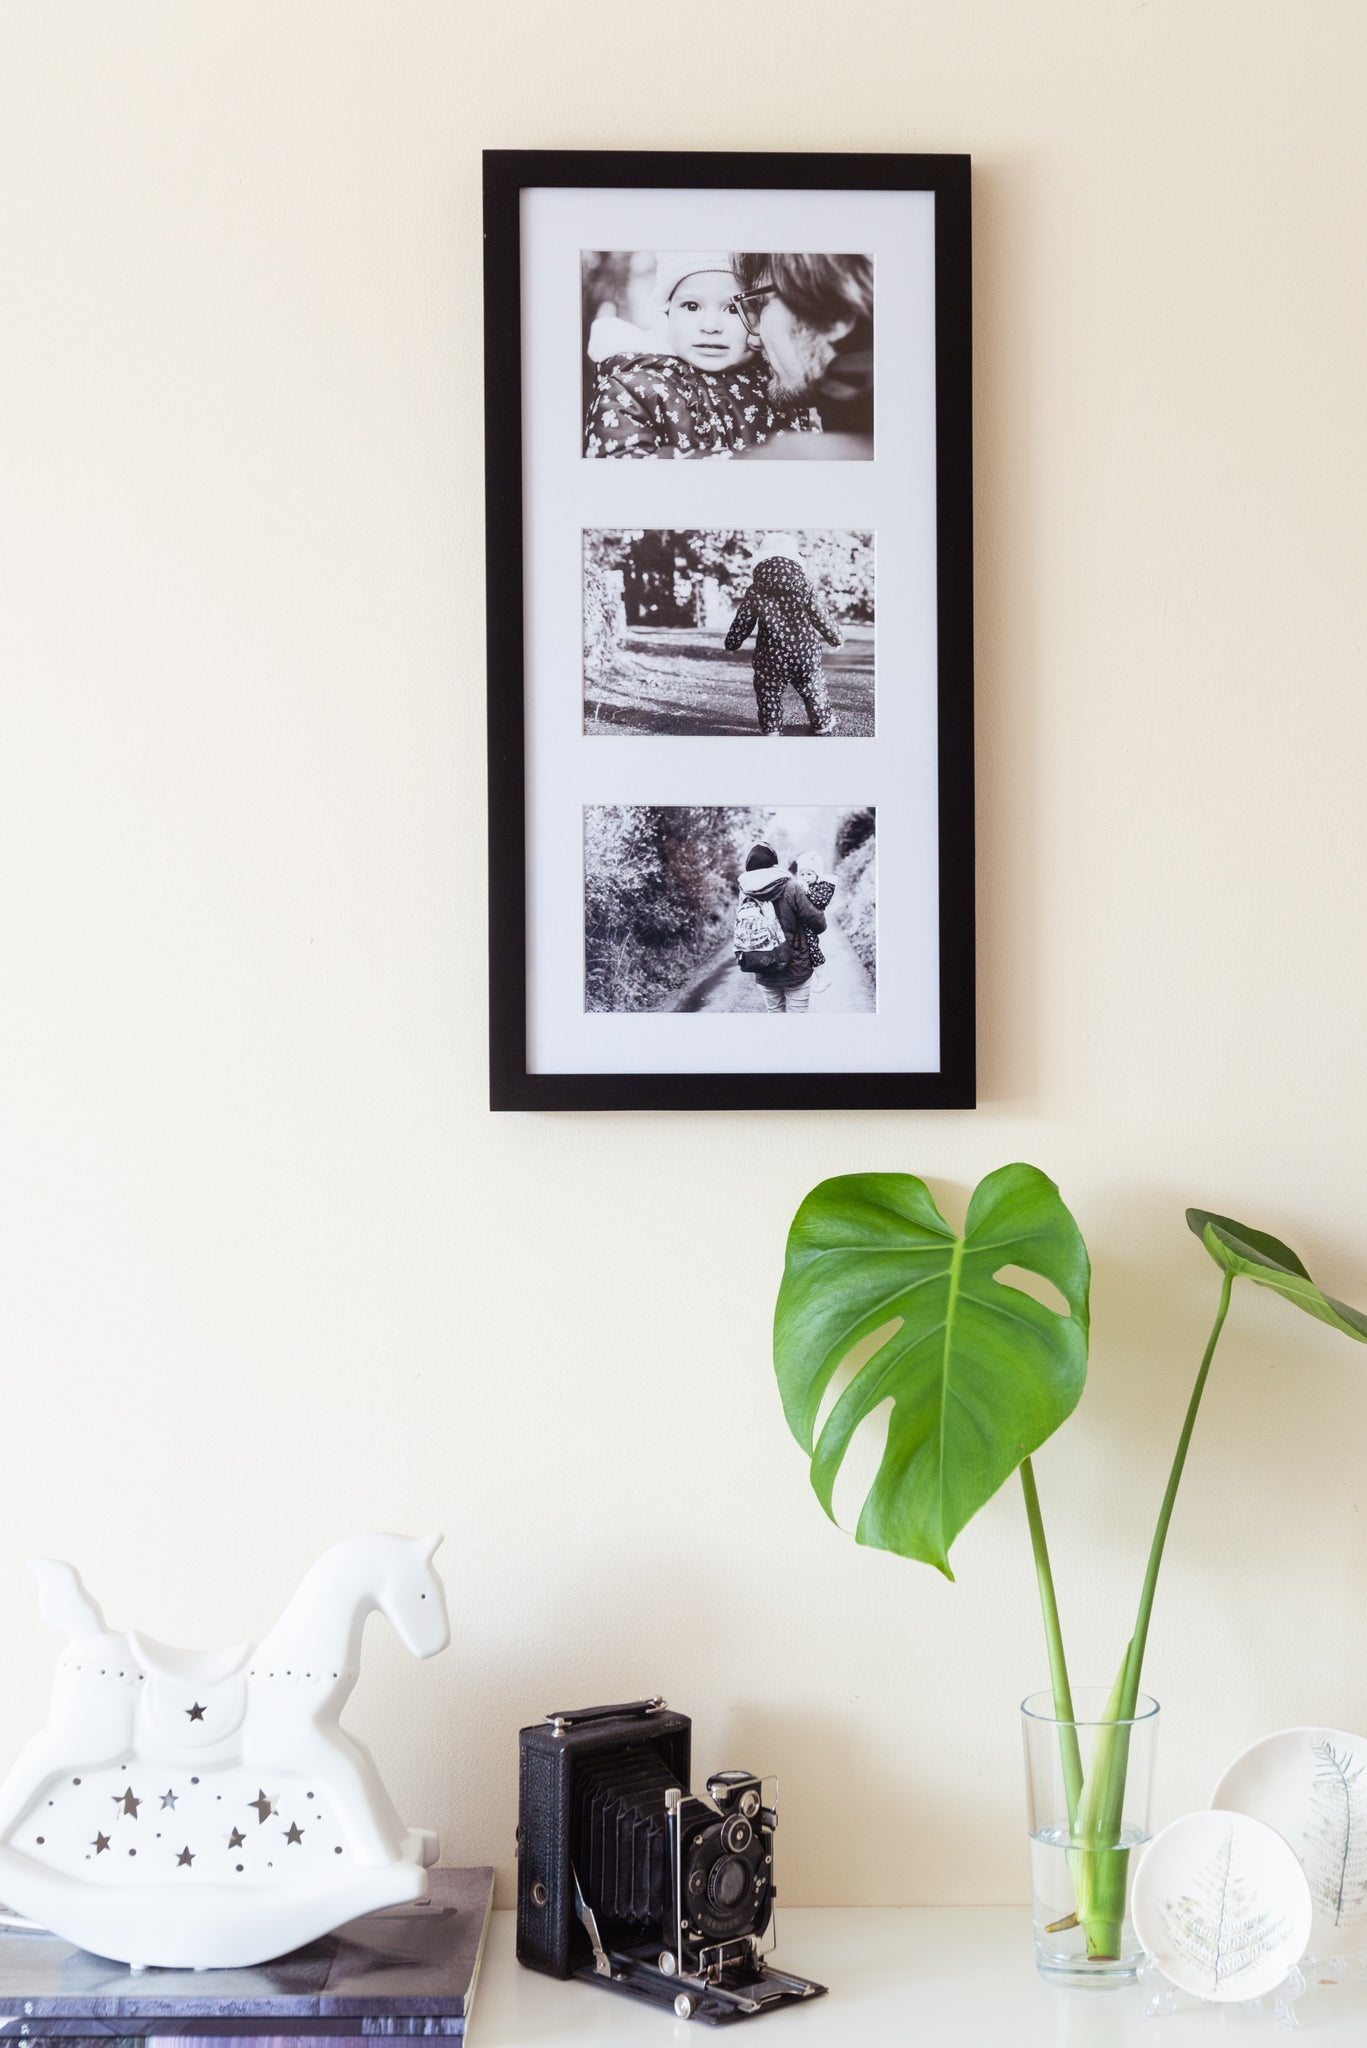 (PRE-ORDER) Black Solid Wood 3-Aperture Frame + Photographic Prints